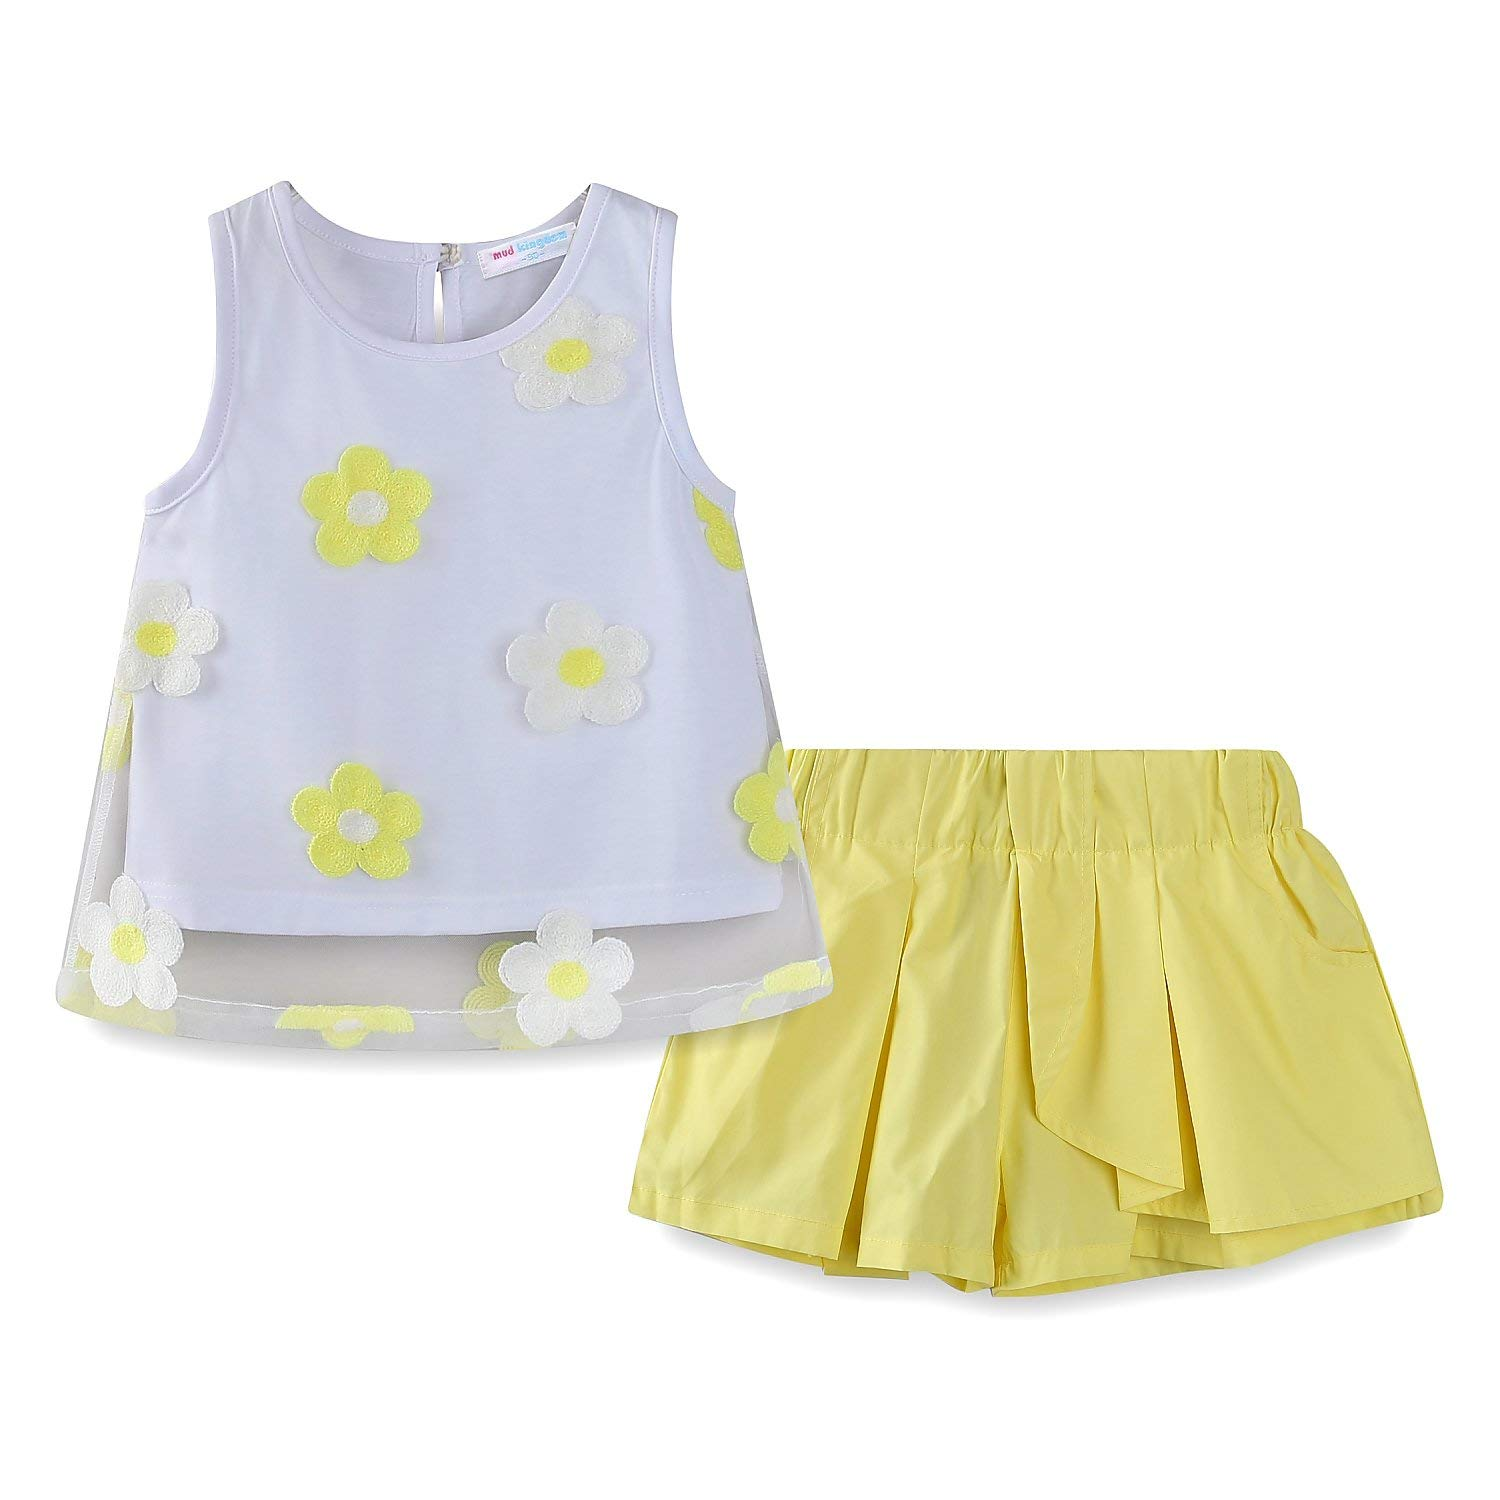 852e91556ea Get Quotations · Mud Kingdom Little Girls Outfits Summer Holiday Sunflower